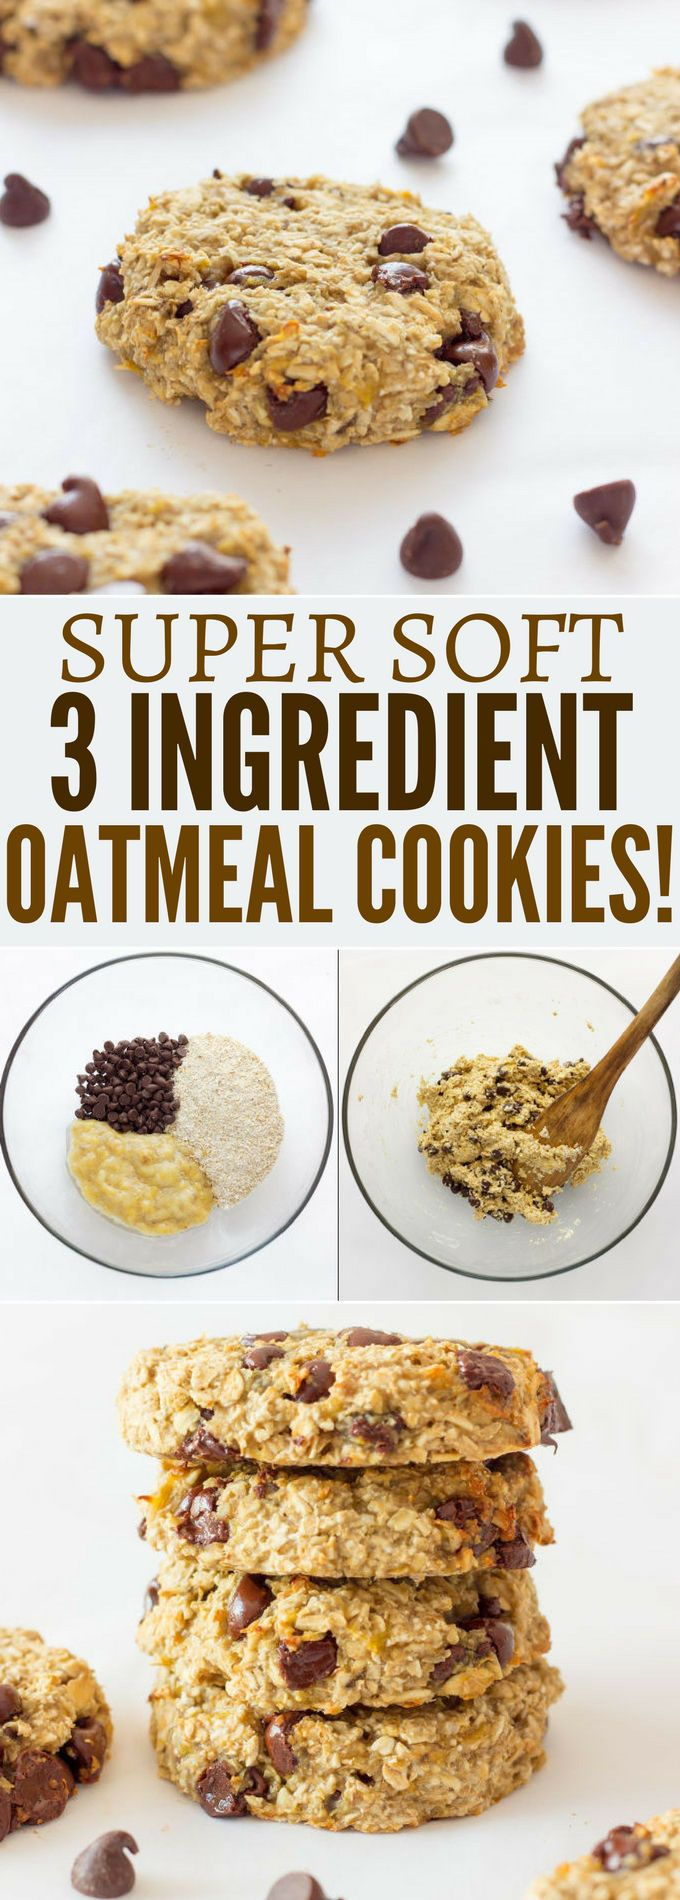 Ready under 20 minutes, these healthy, chewy and soft banana & oatmeal cookies are made with only 3 simple ingredients. They are a